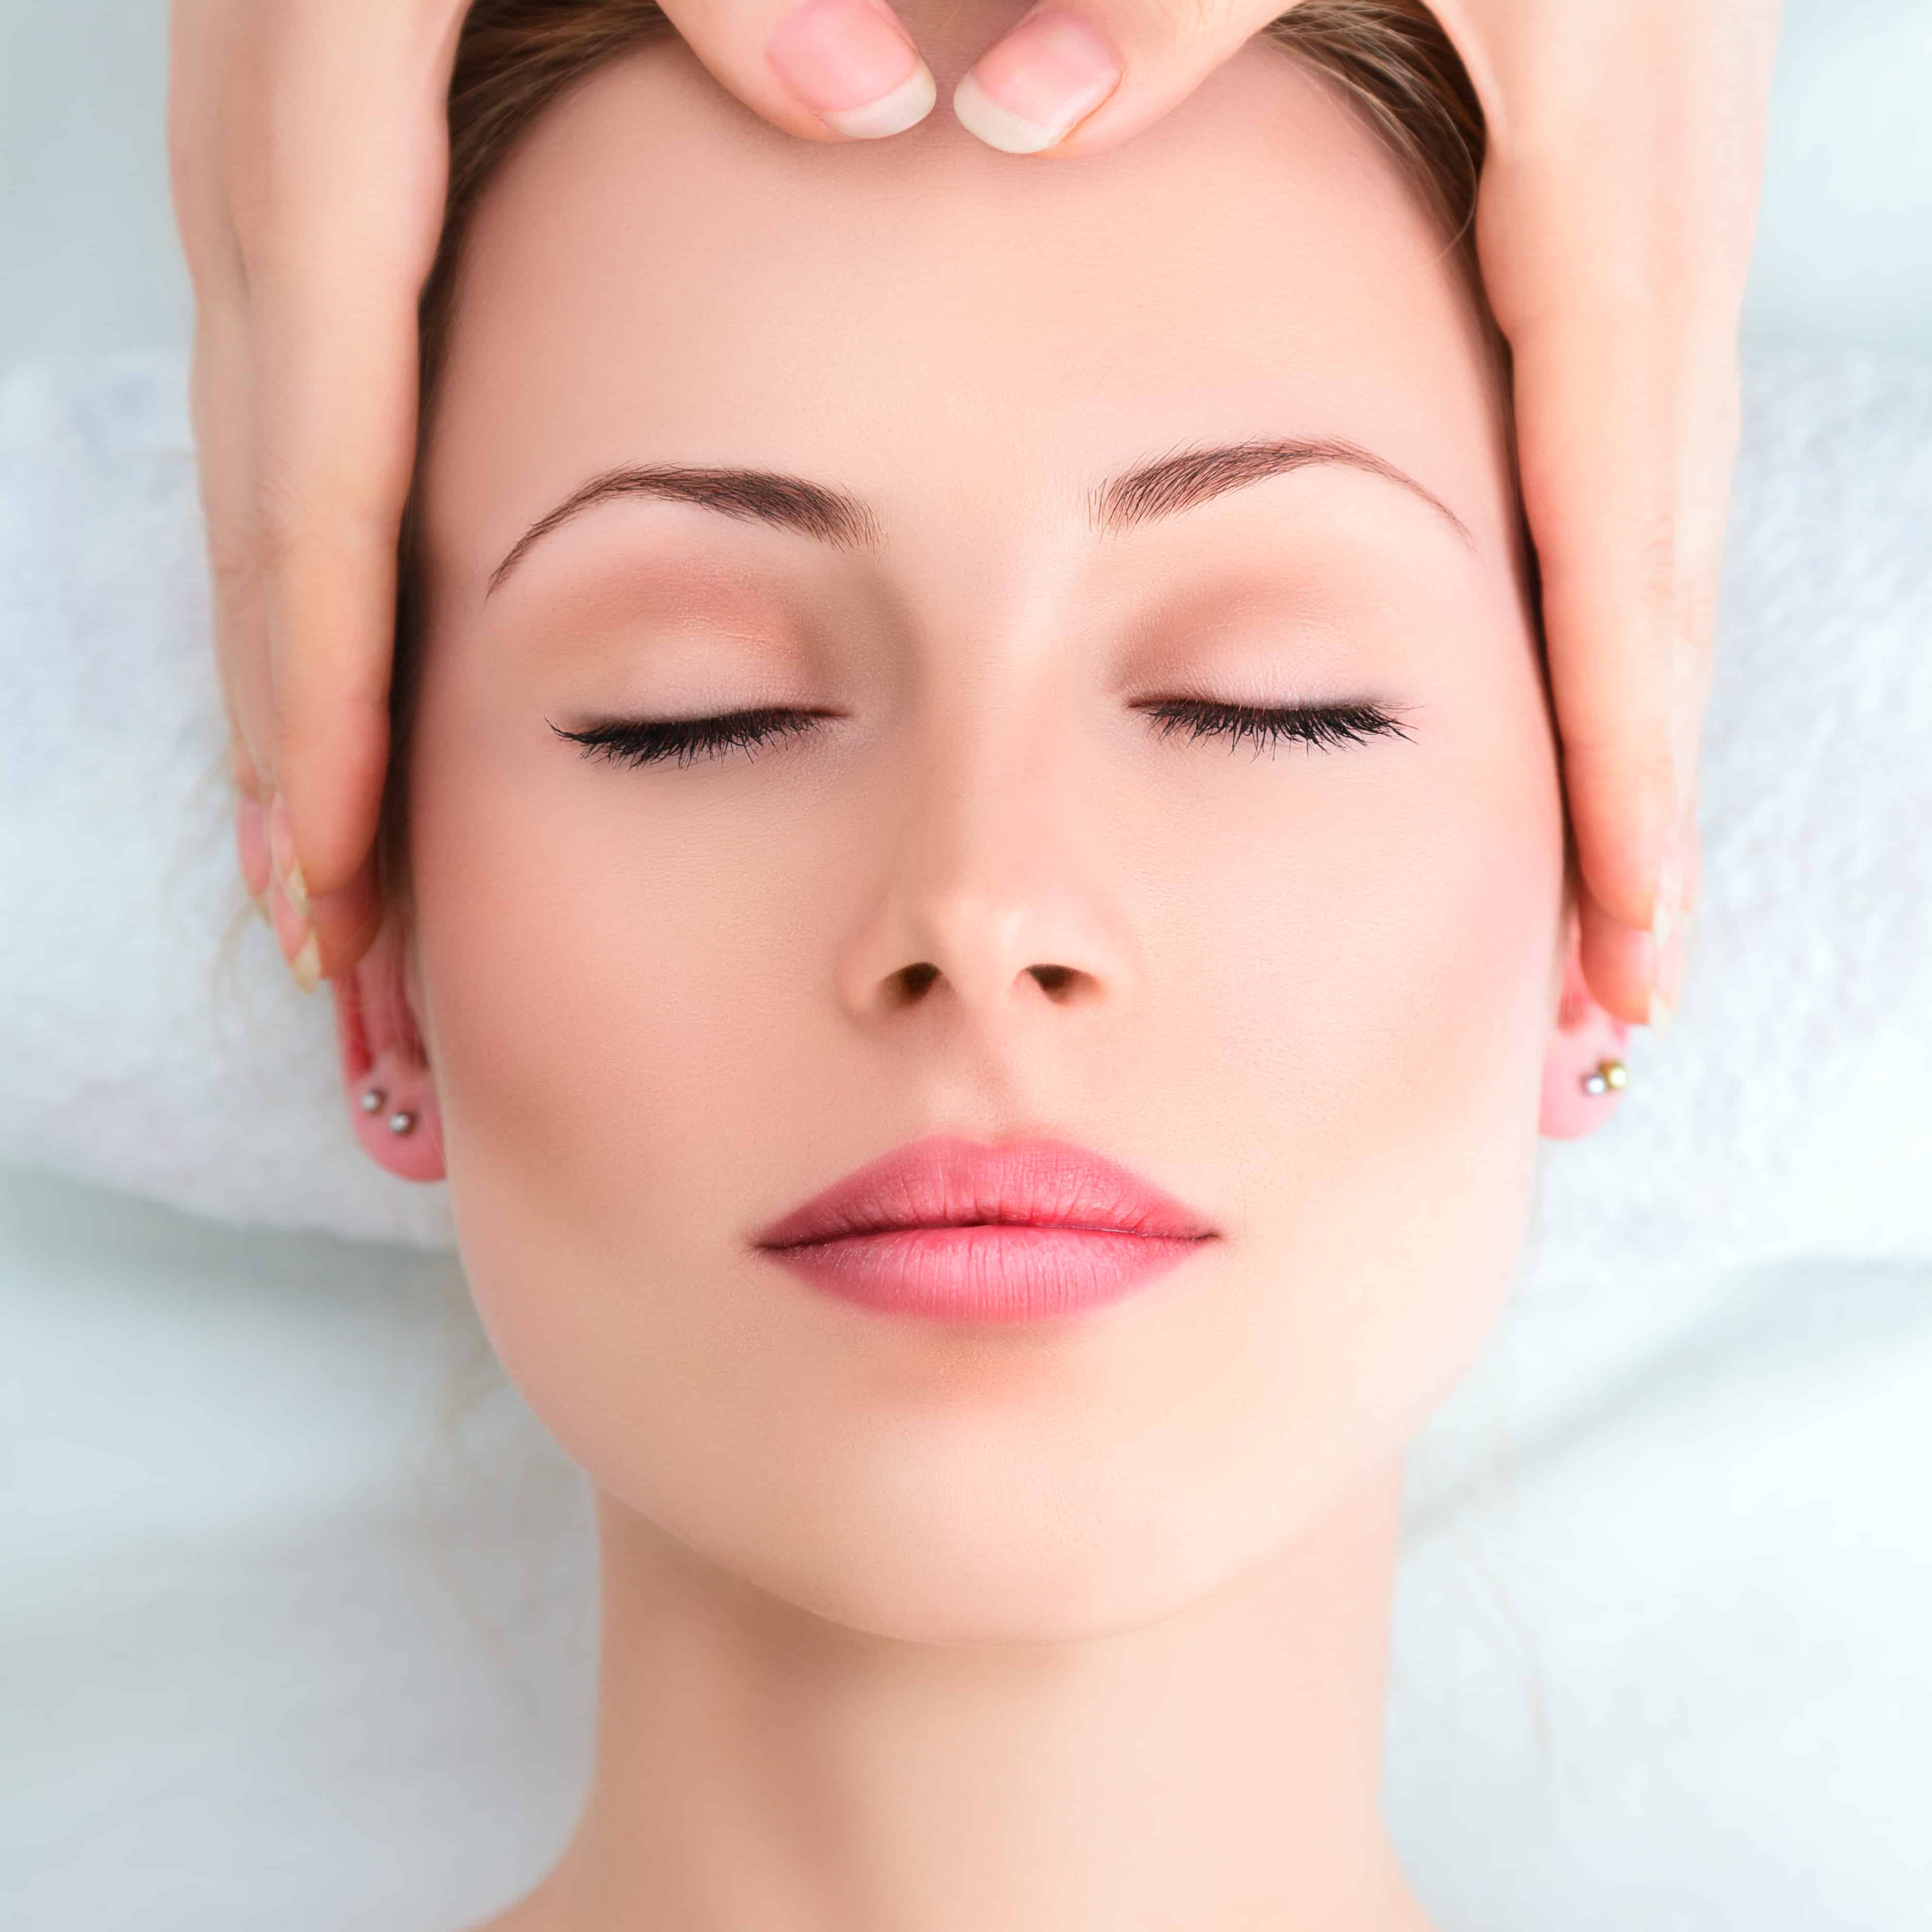 Quality Over Quantity When Choosing a Med Spa?